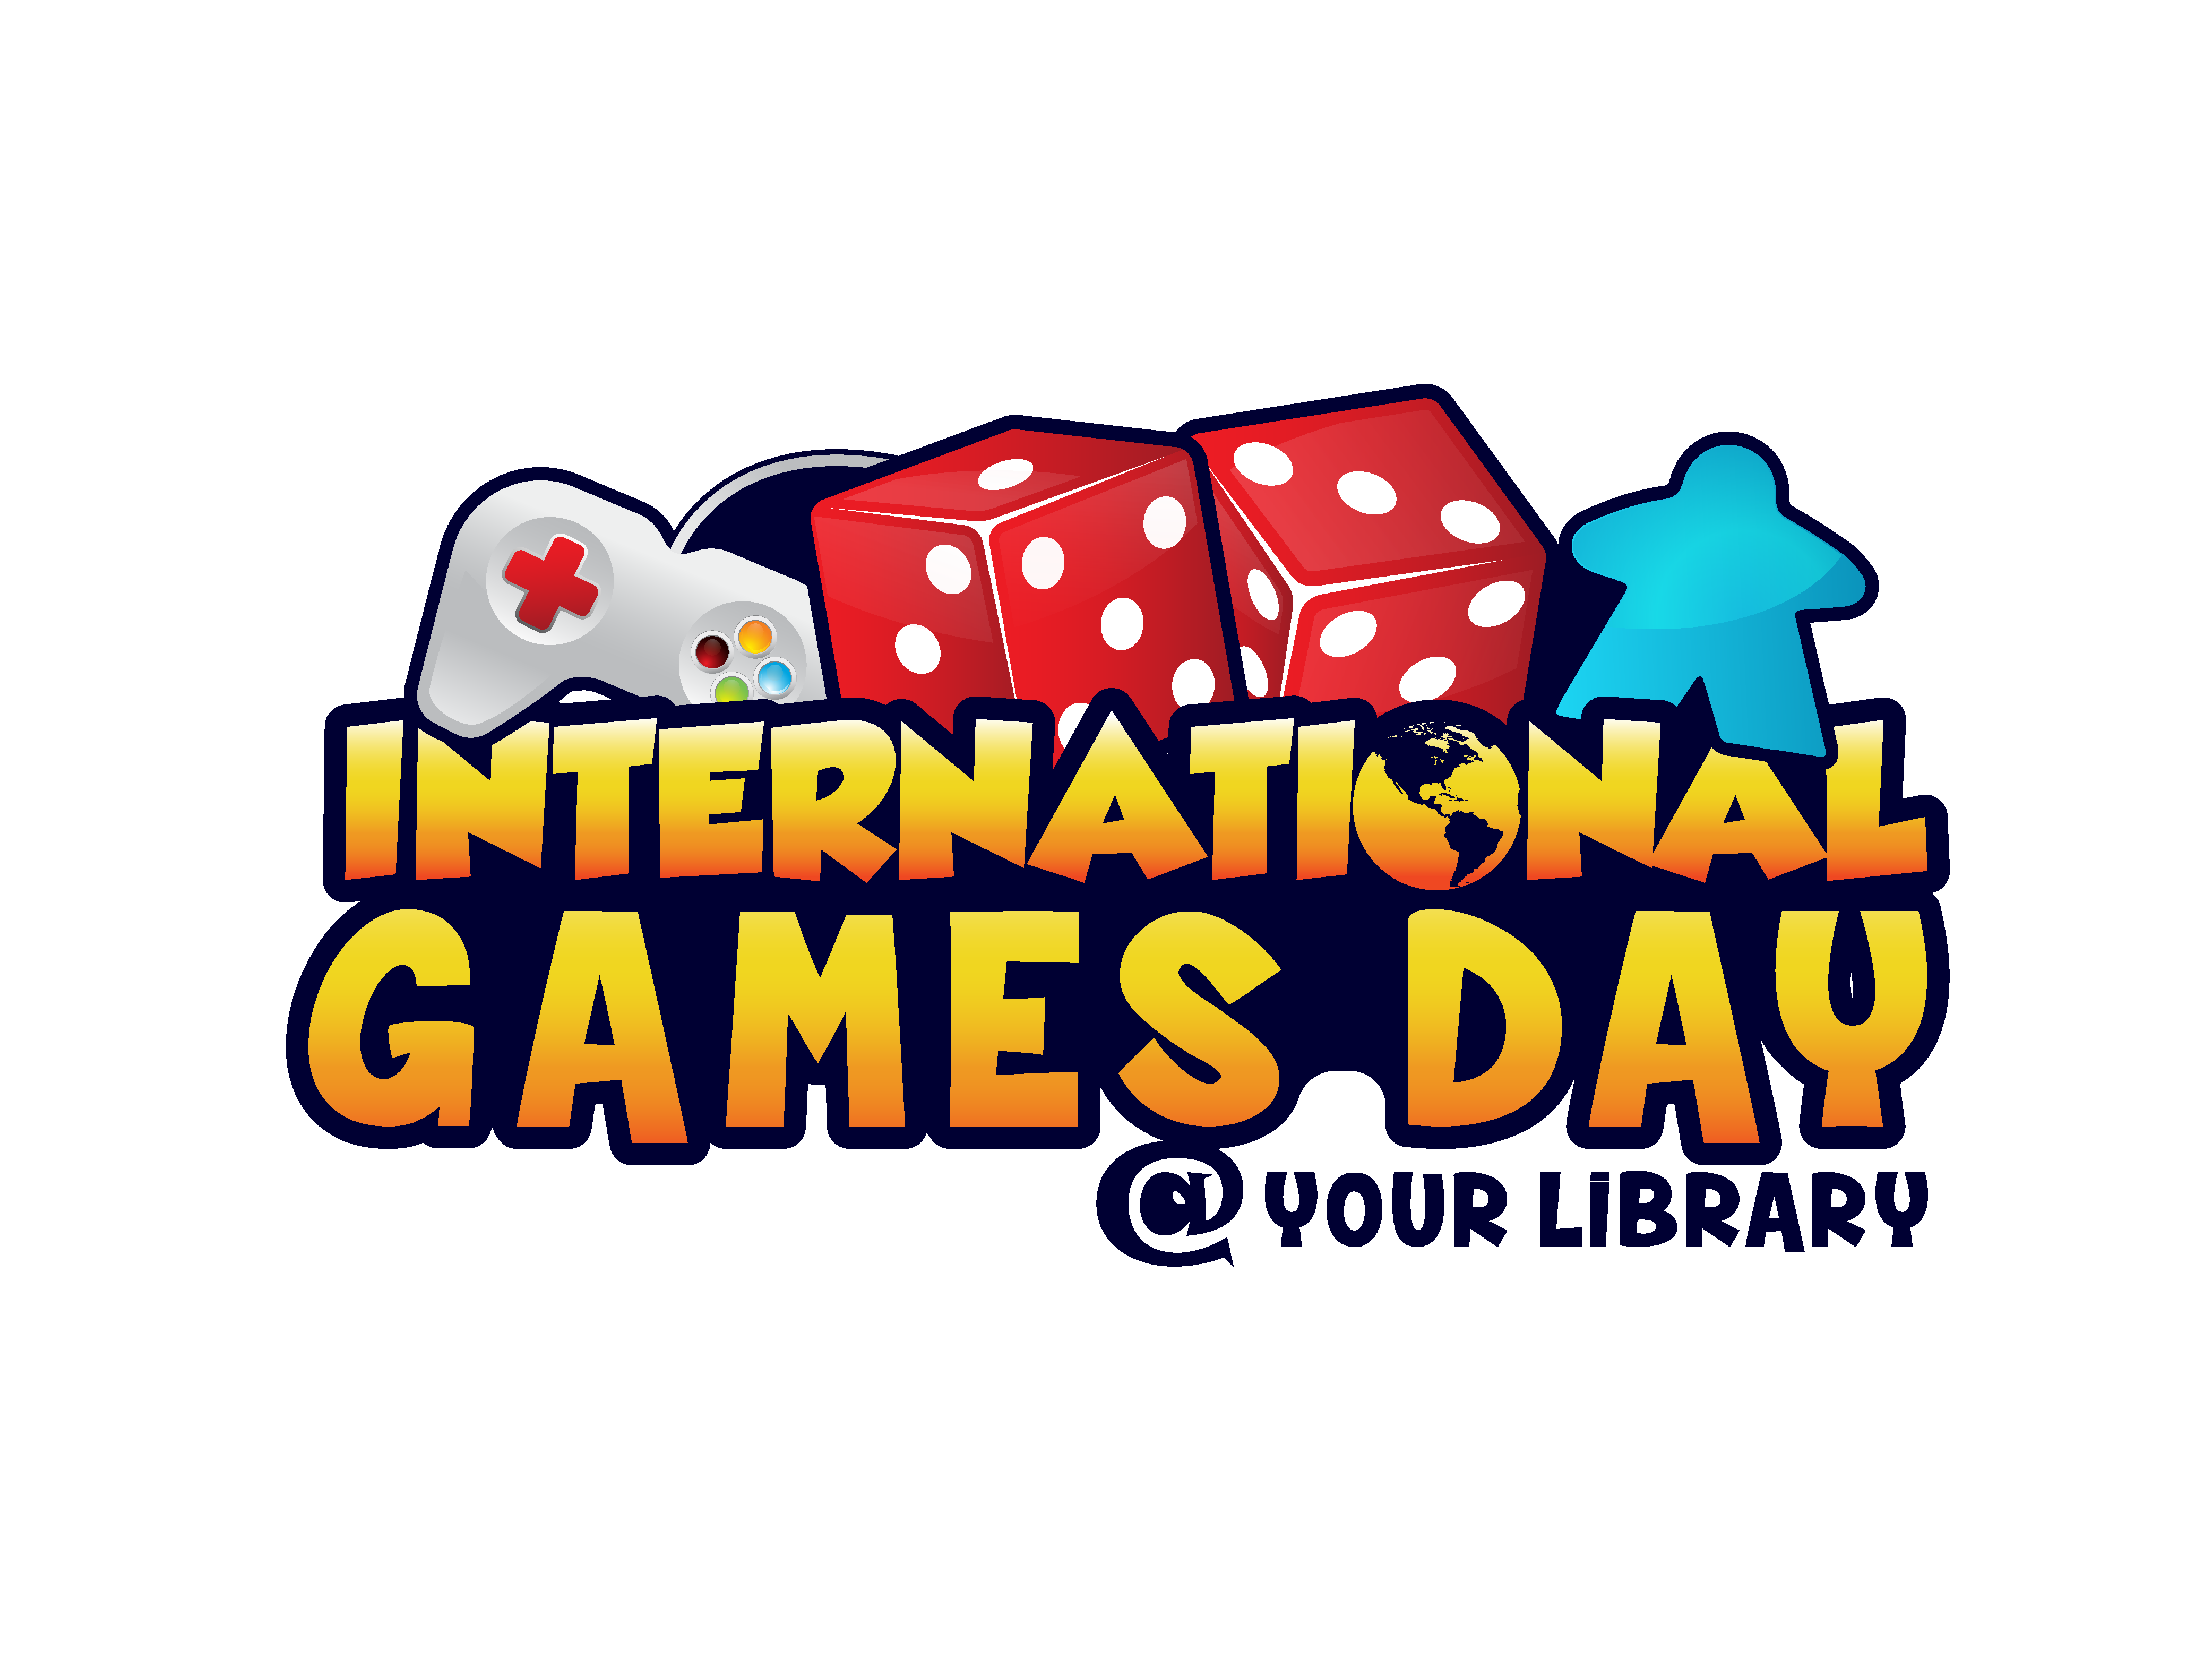 International Games Day 2015 image